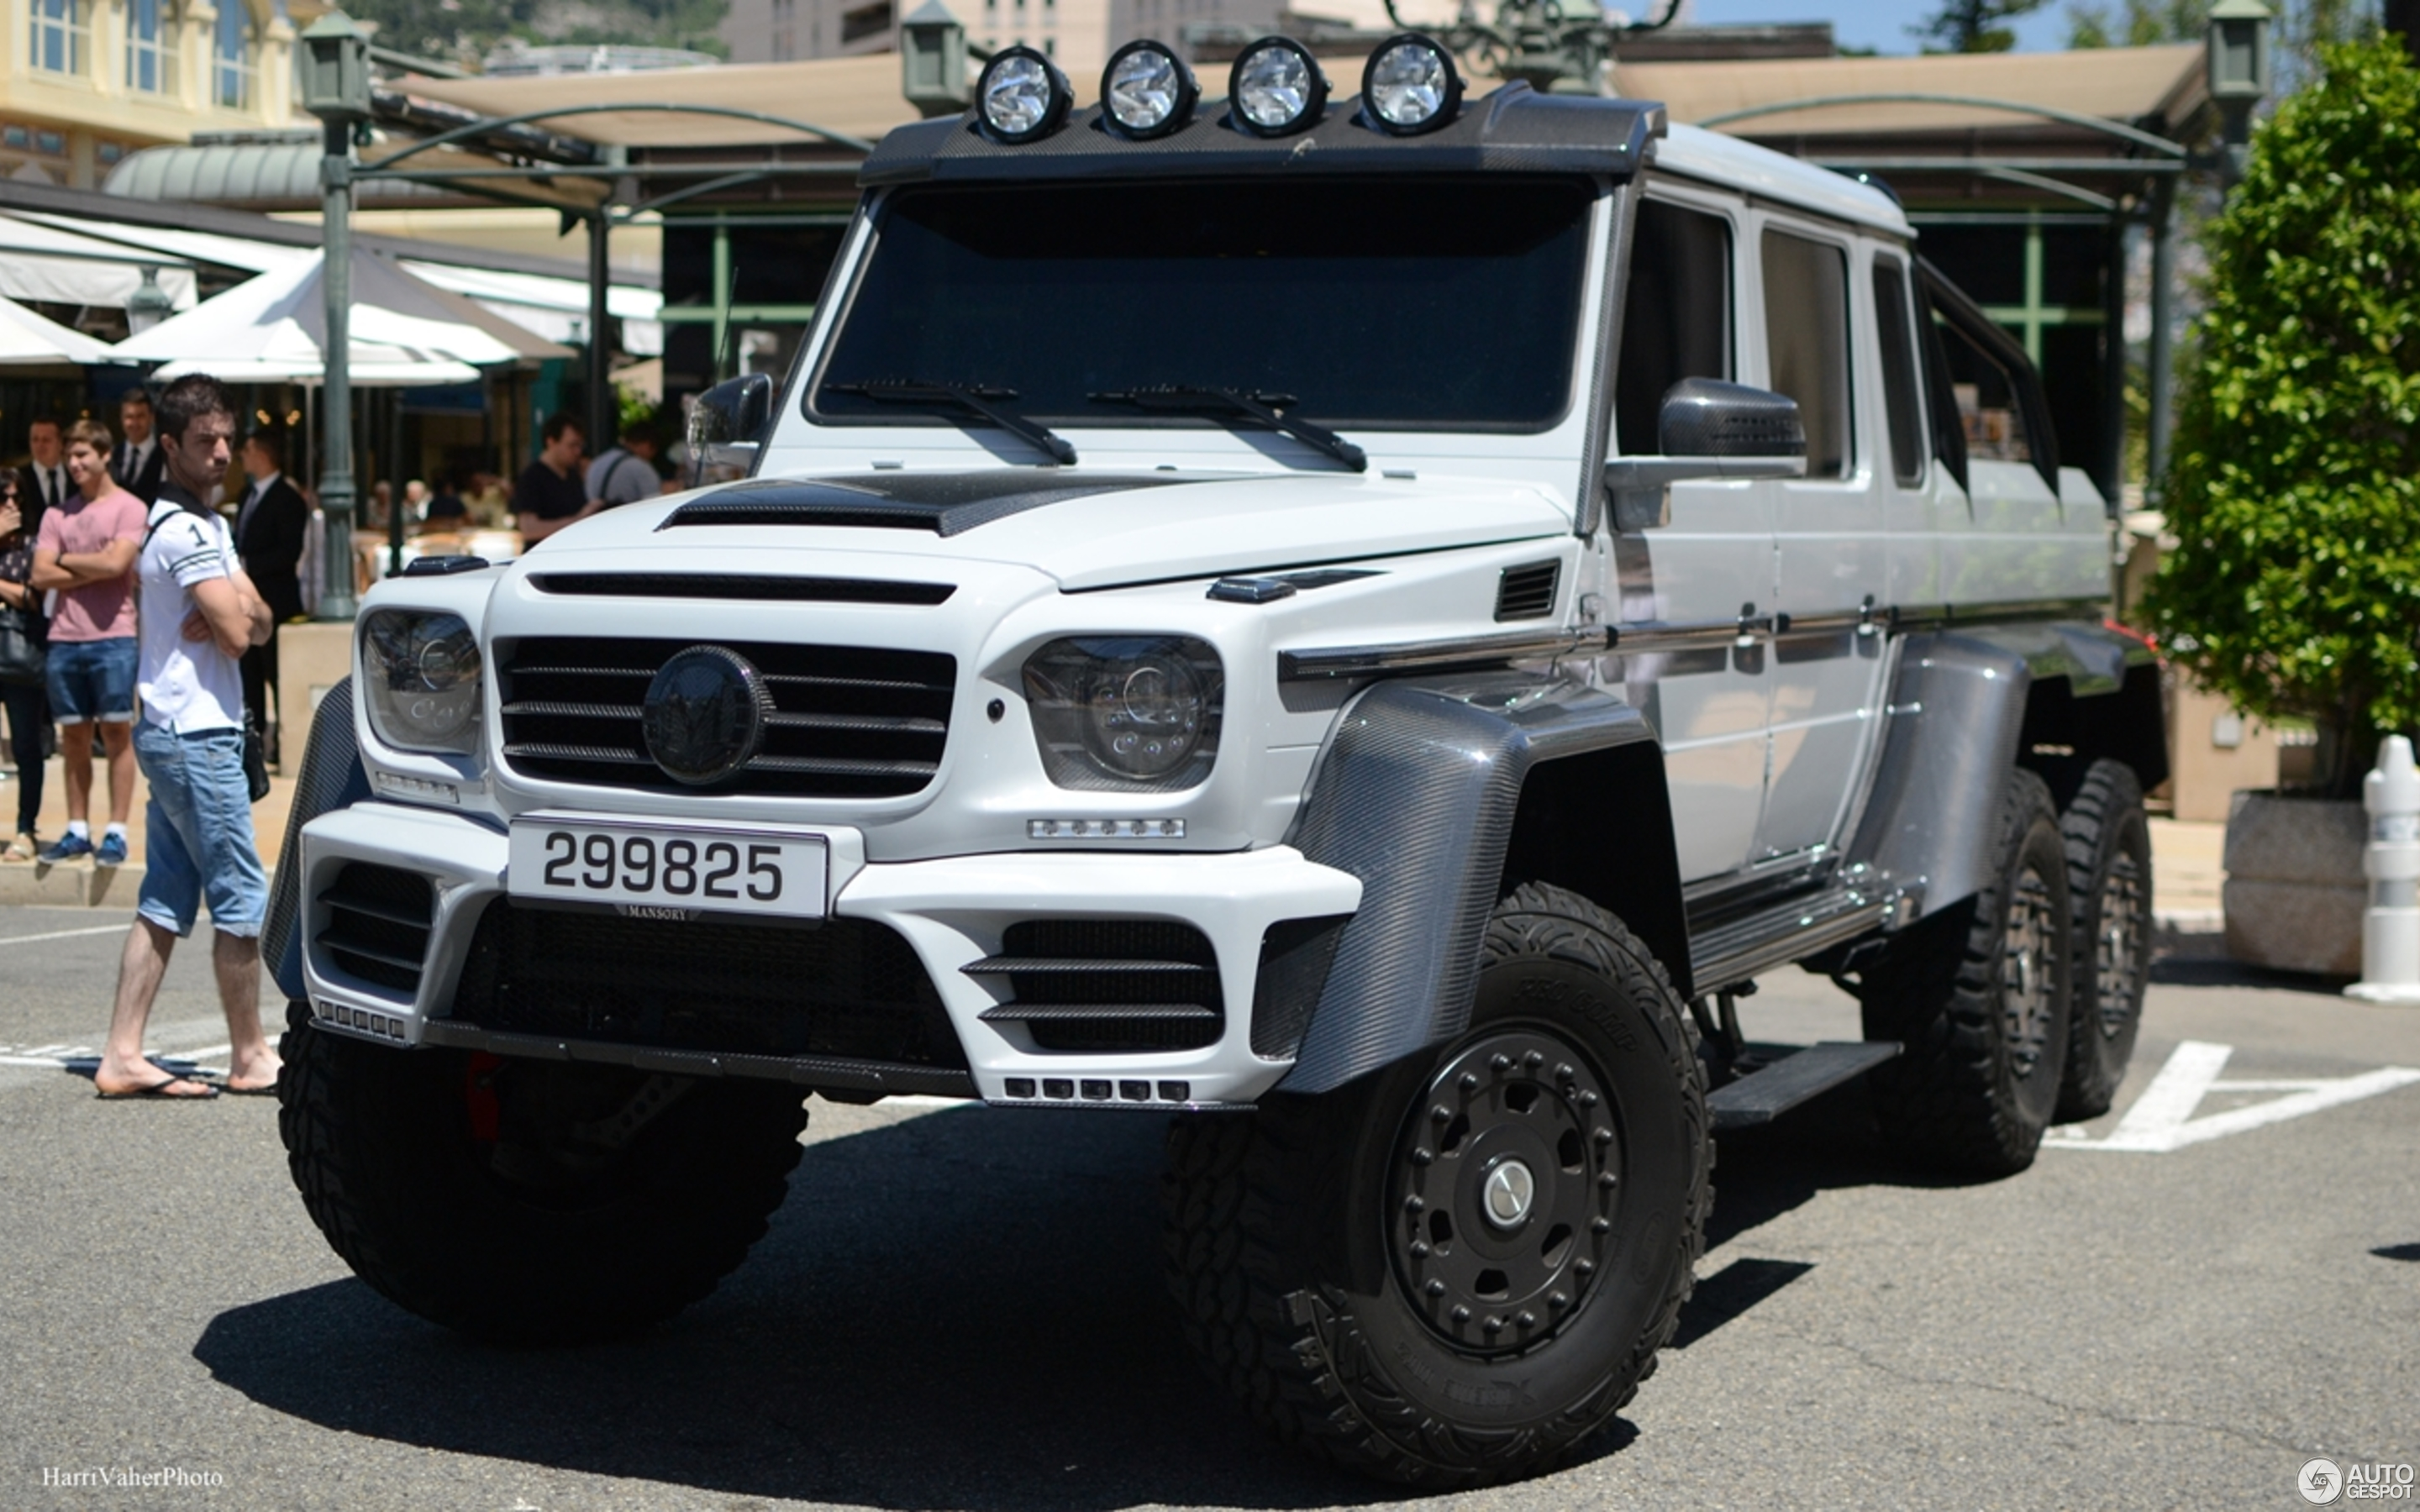 Mercedes Benz Mansory Gronos G 63 AMG 6x6 4 September 2017